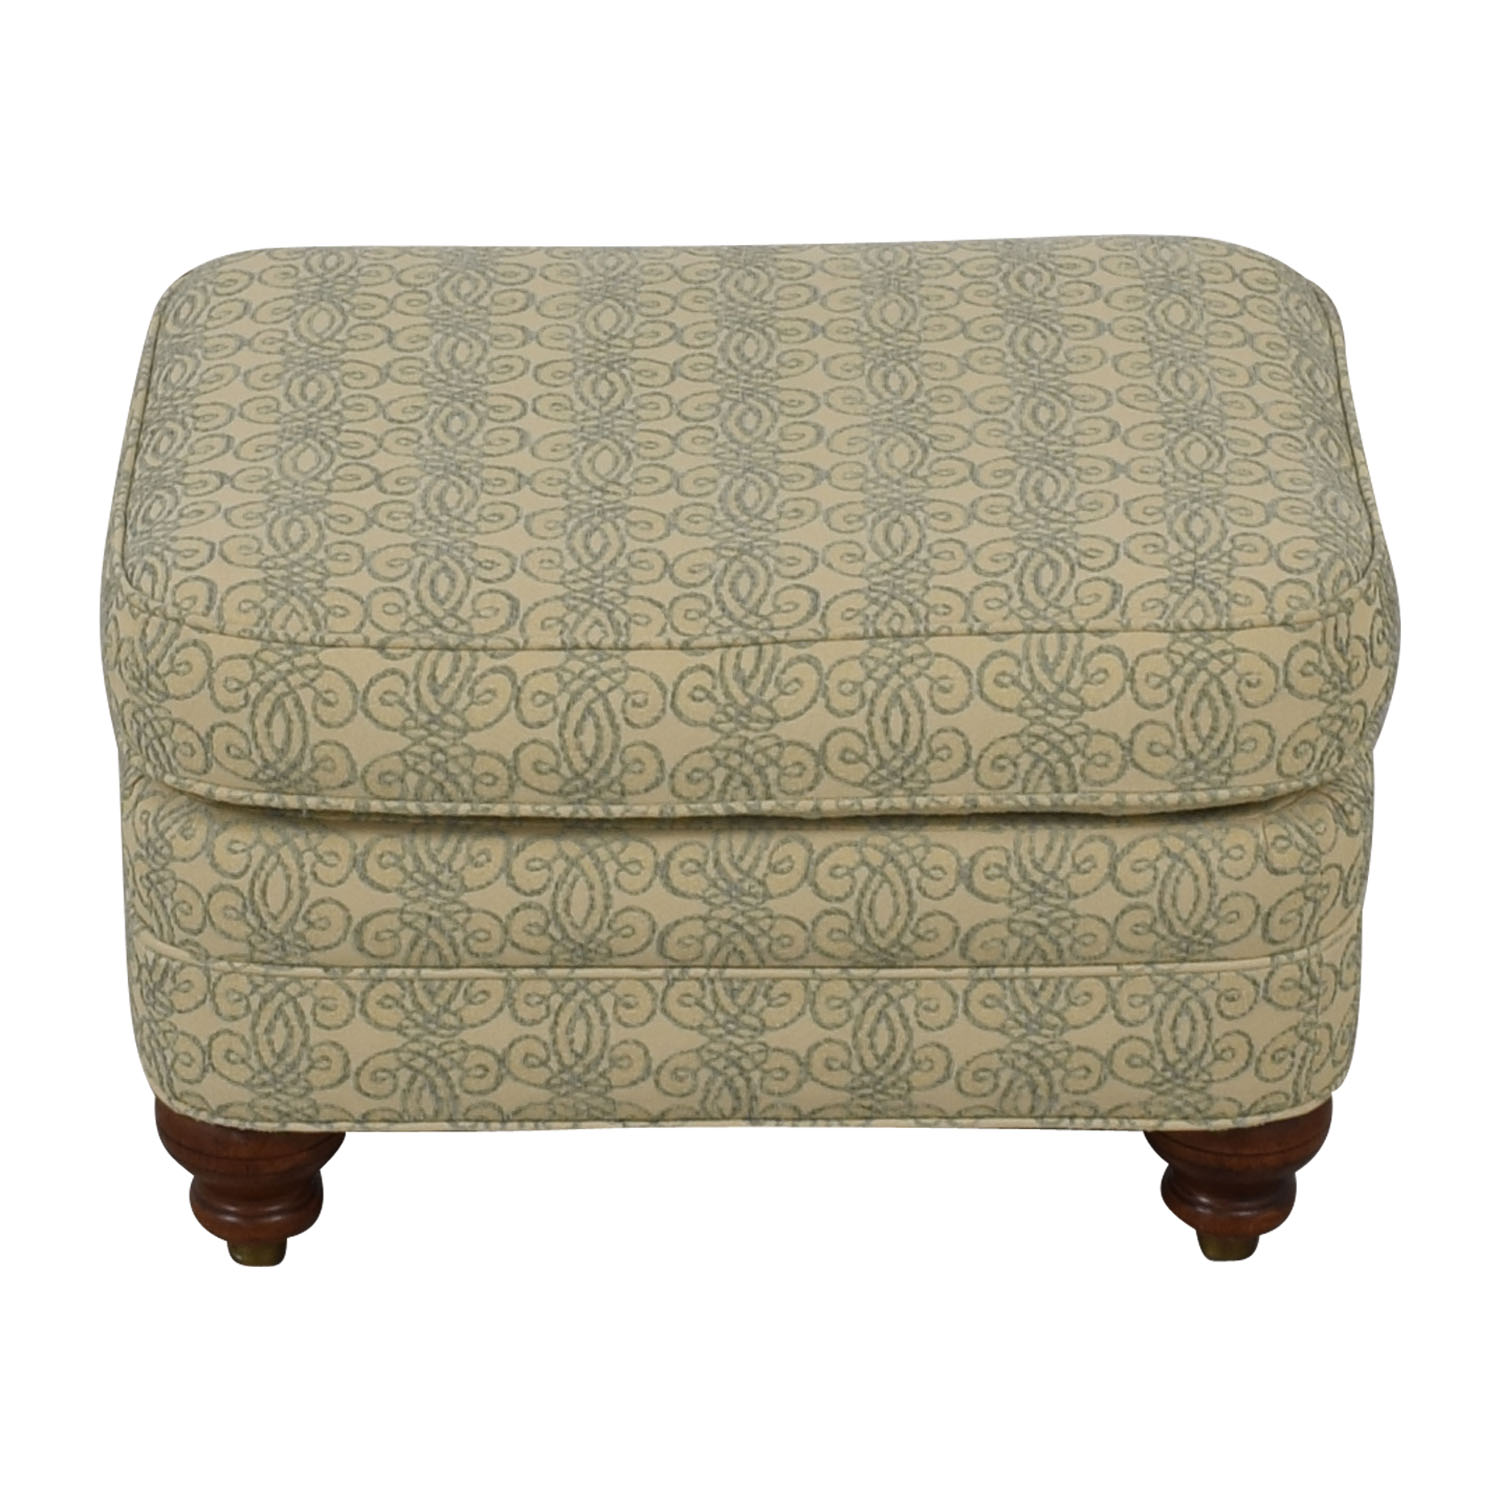 Ethan Allen Print Upholstered Ottoman sale